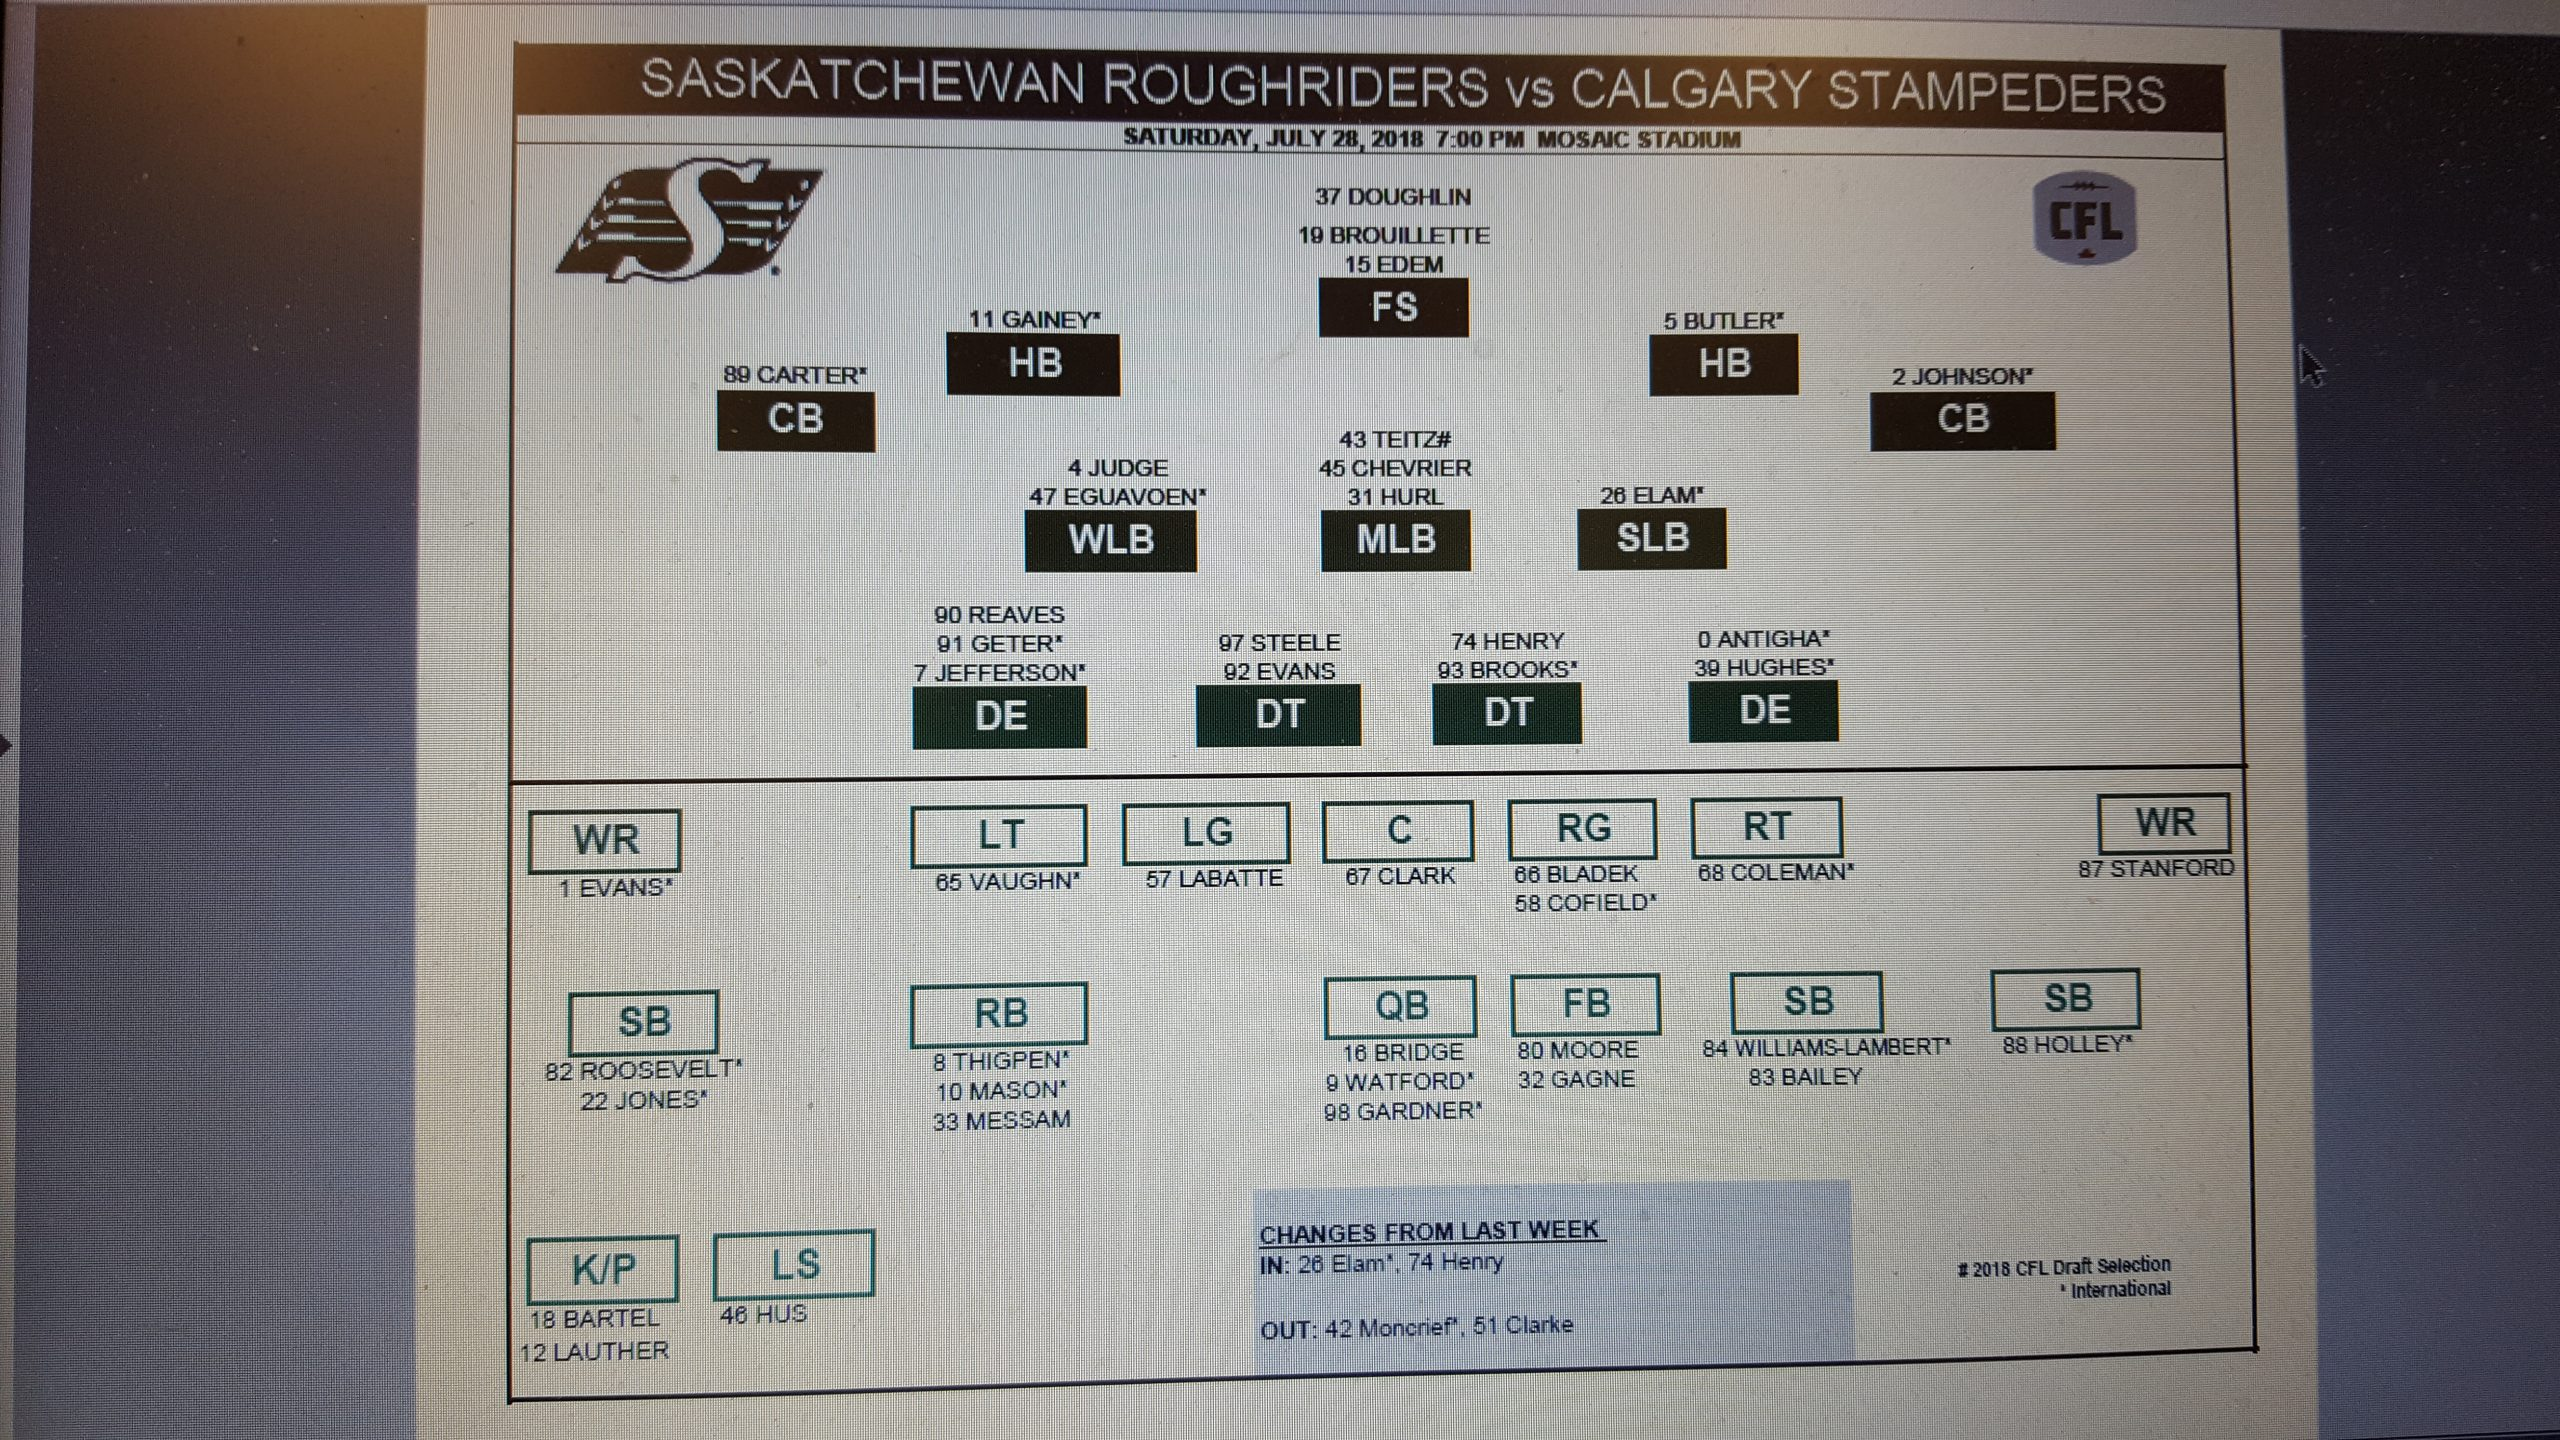 Riders Make Two Changes to 46-Man Roster Ahead of Saturday's Game